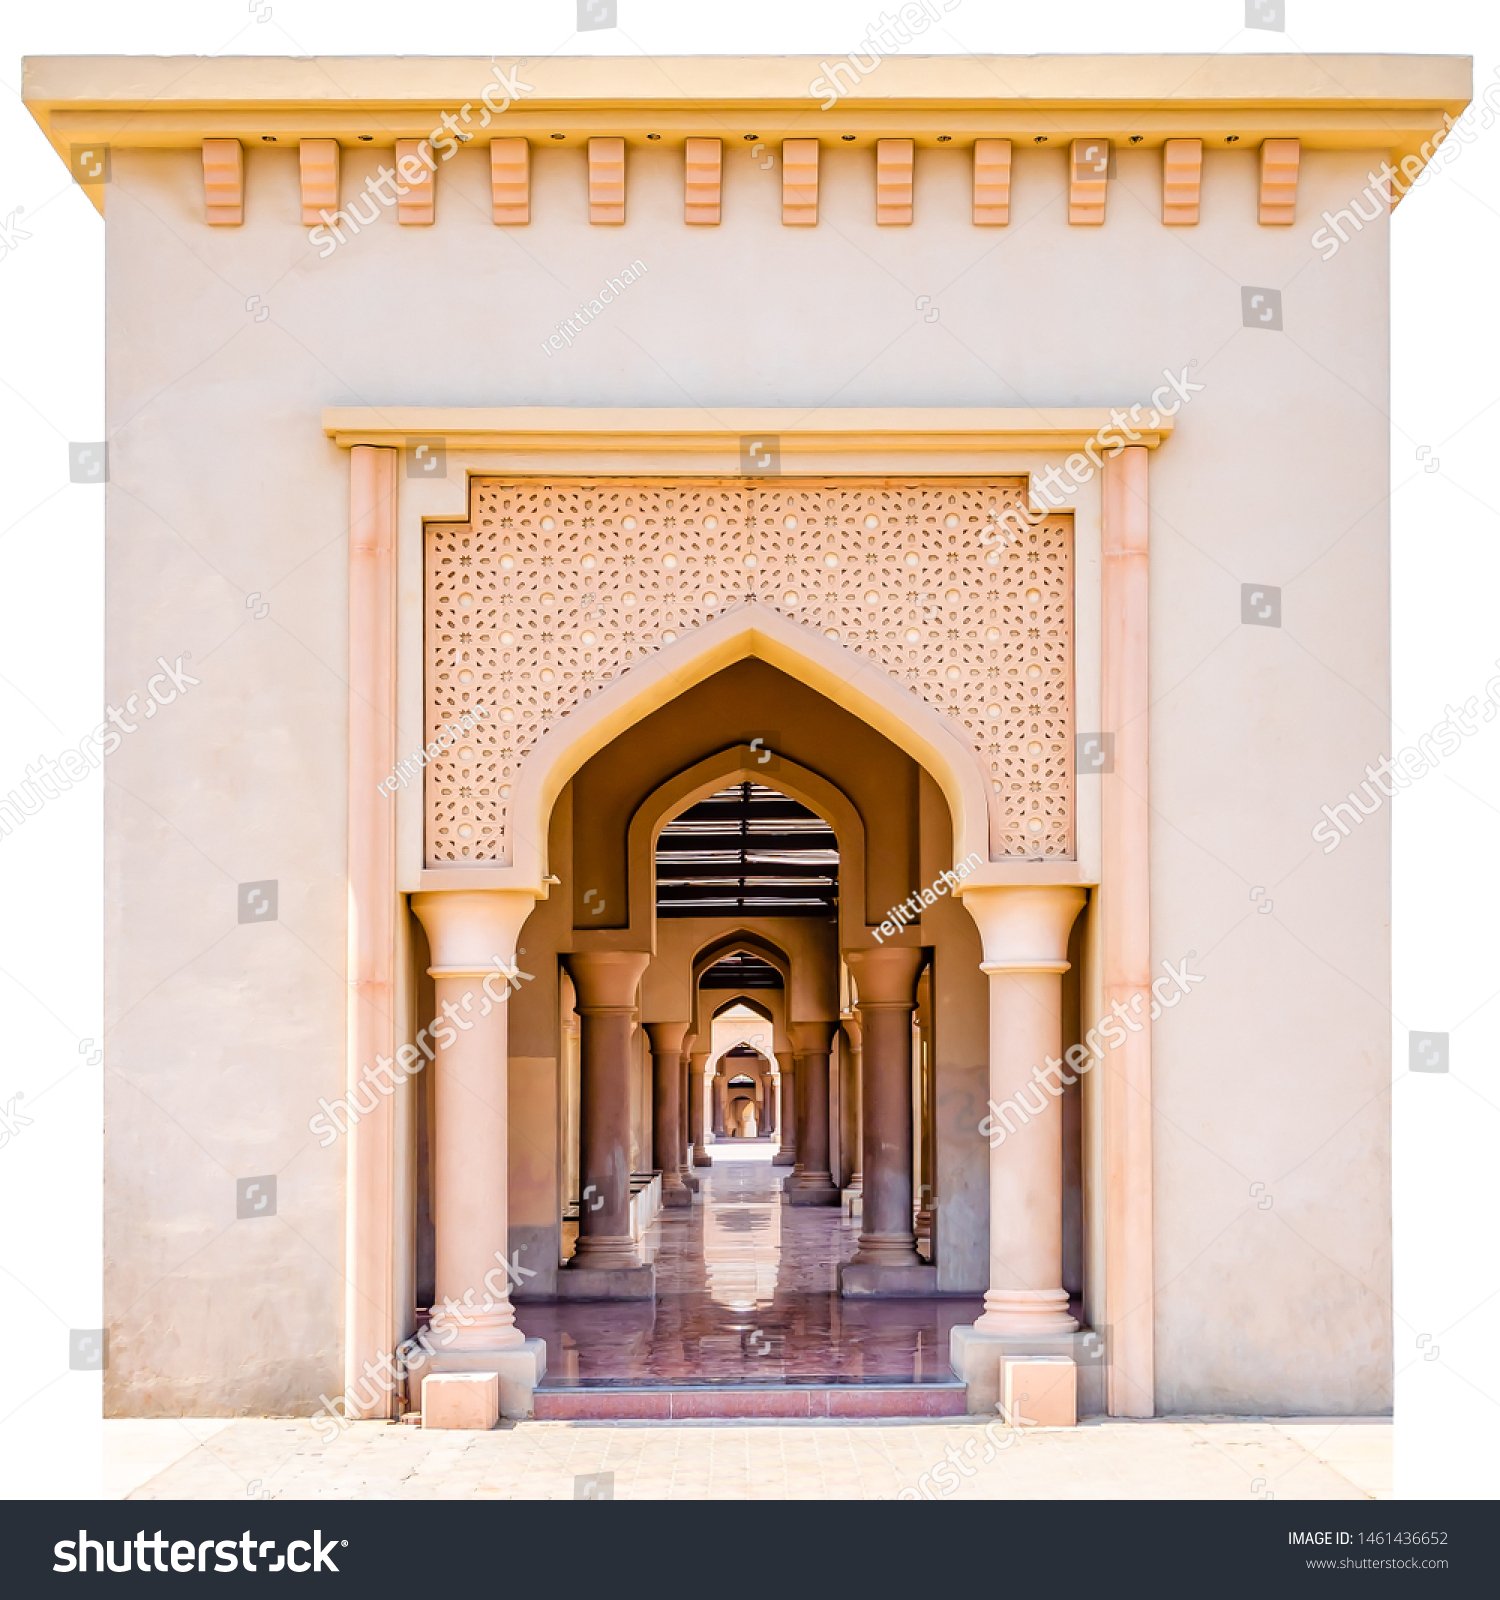 Beautiful arch with artistic patterns and the lengthy corridor with shining floor. Isolated. From Muscat, Oman.